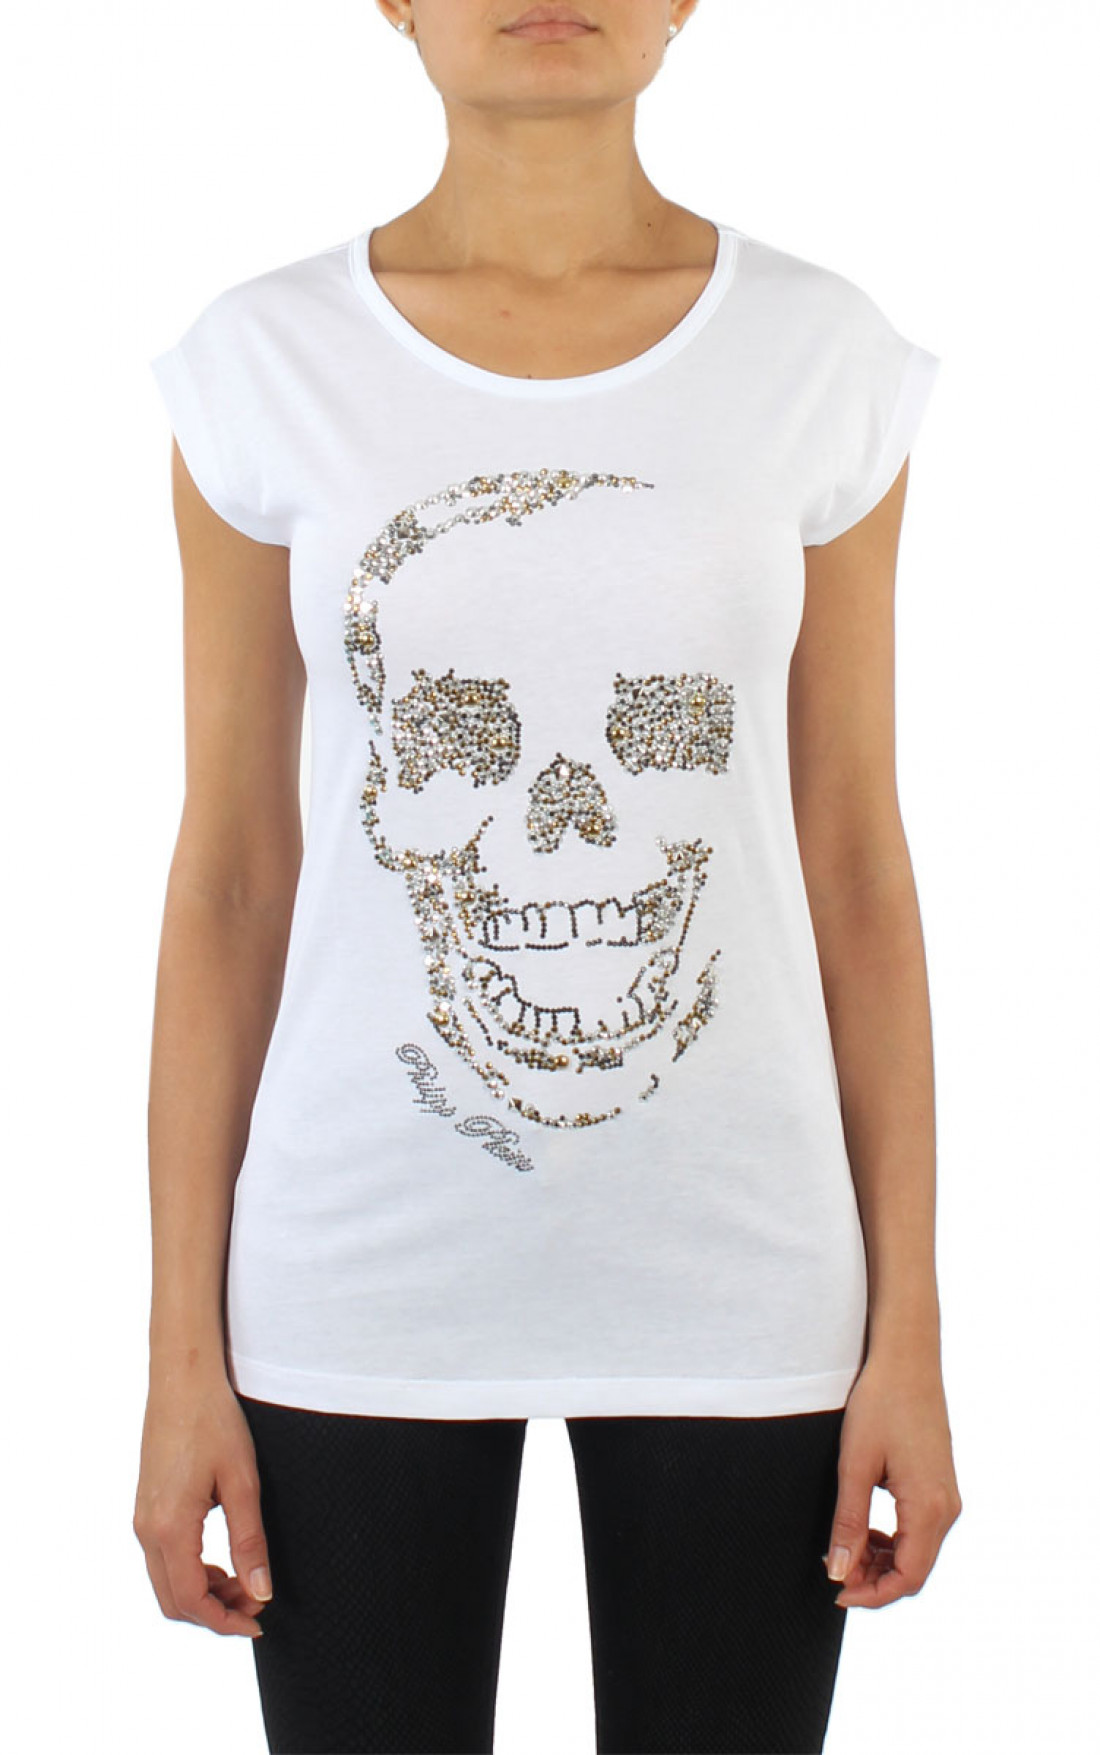 philipp plein diamond skull t shirt white boudi uk